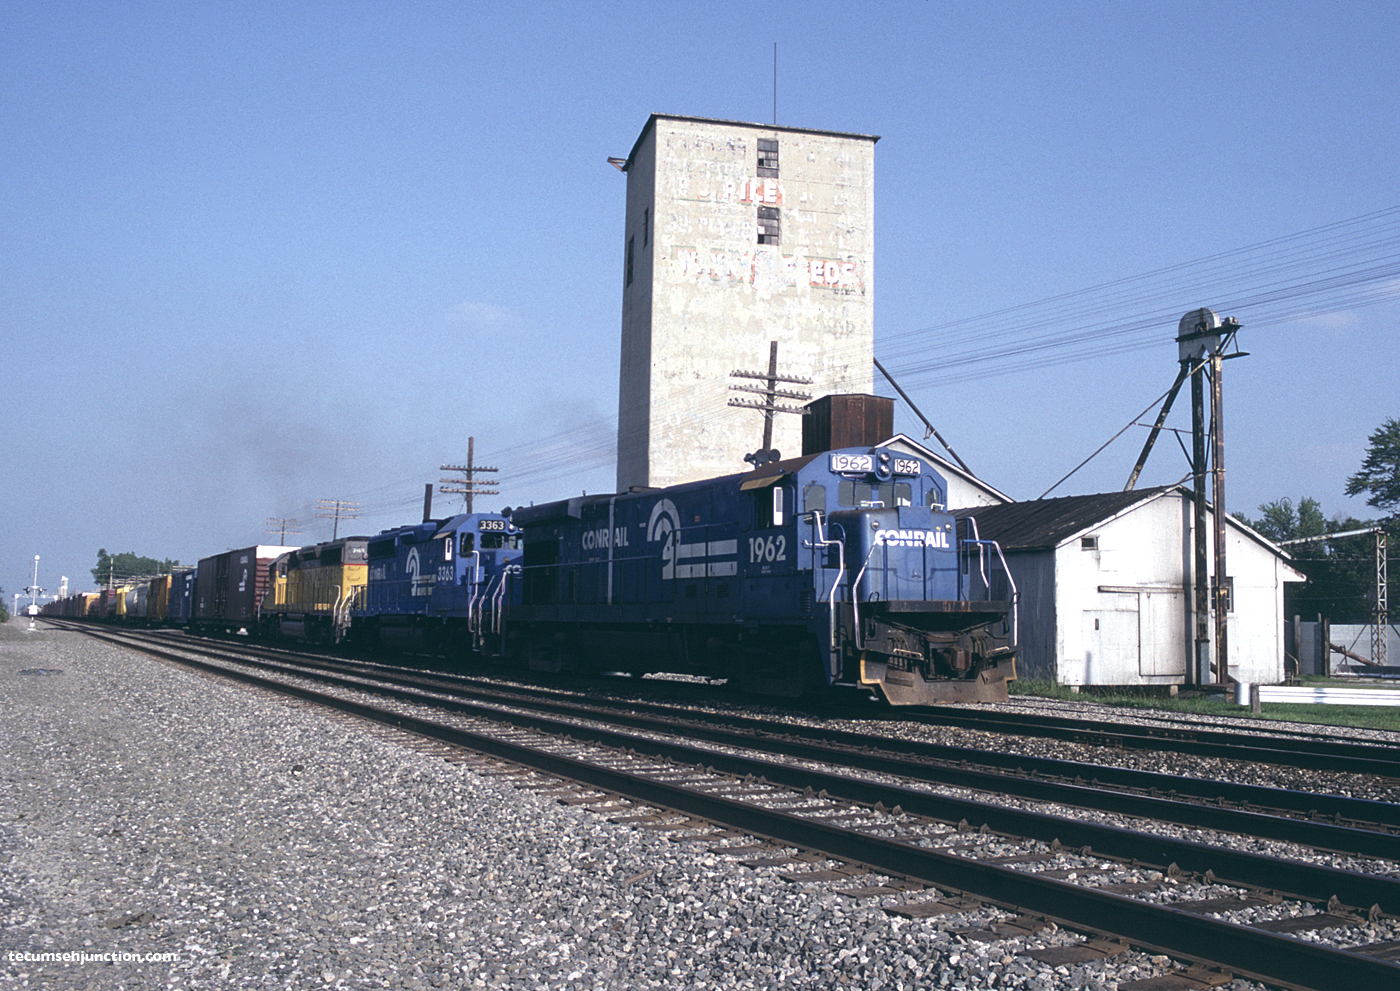 Conrail #1962 at Bryan, OH